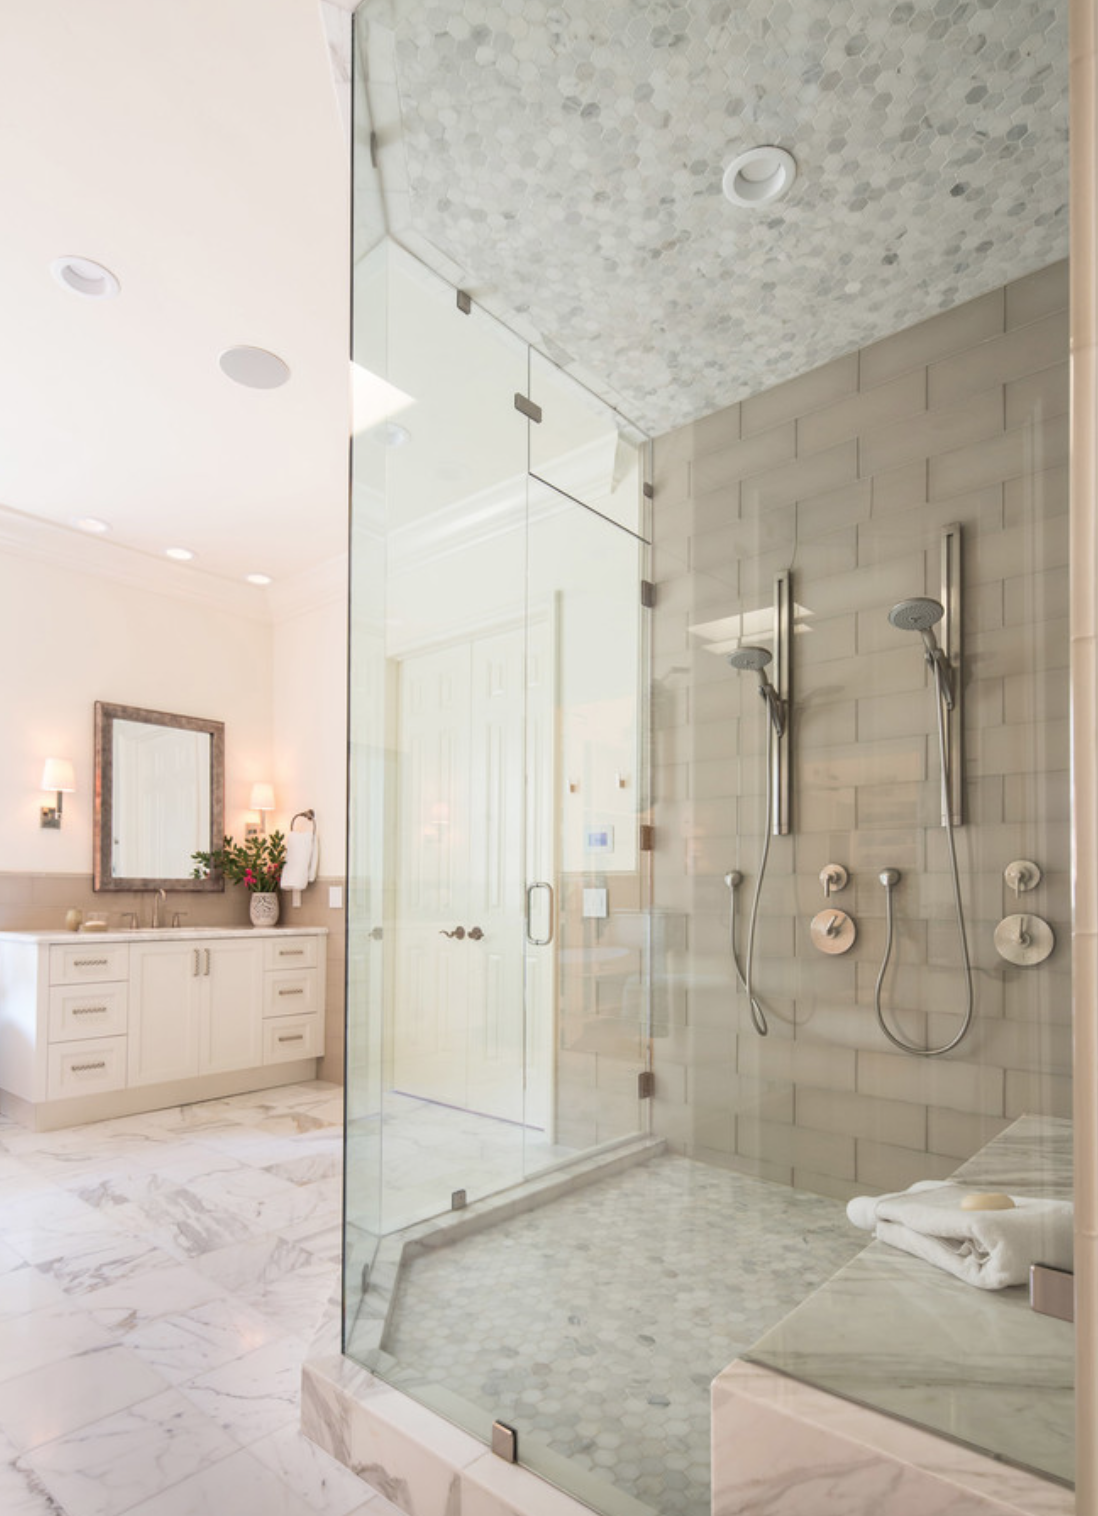 Lori Dennis Bathroom Shower Tile Luxe Design | LORI DENNIS